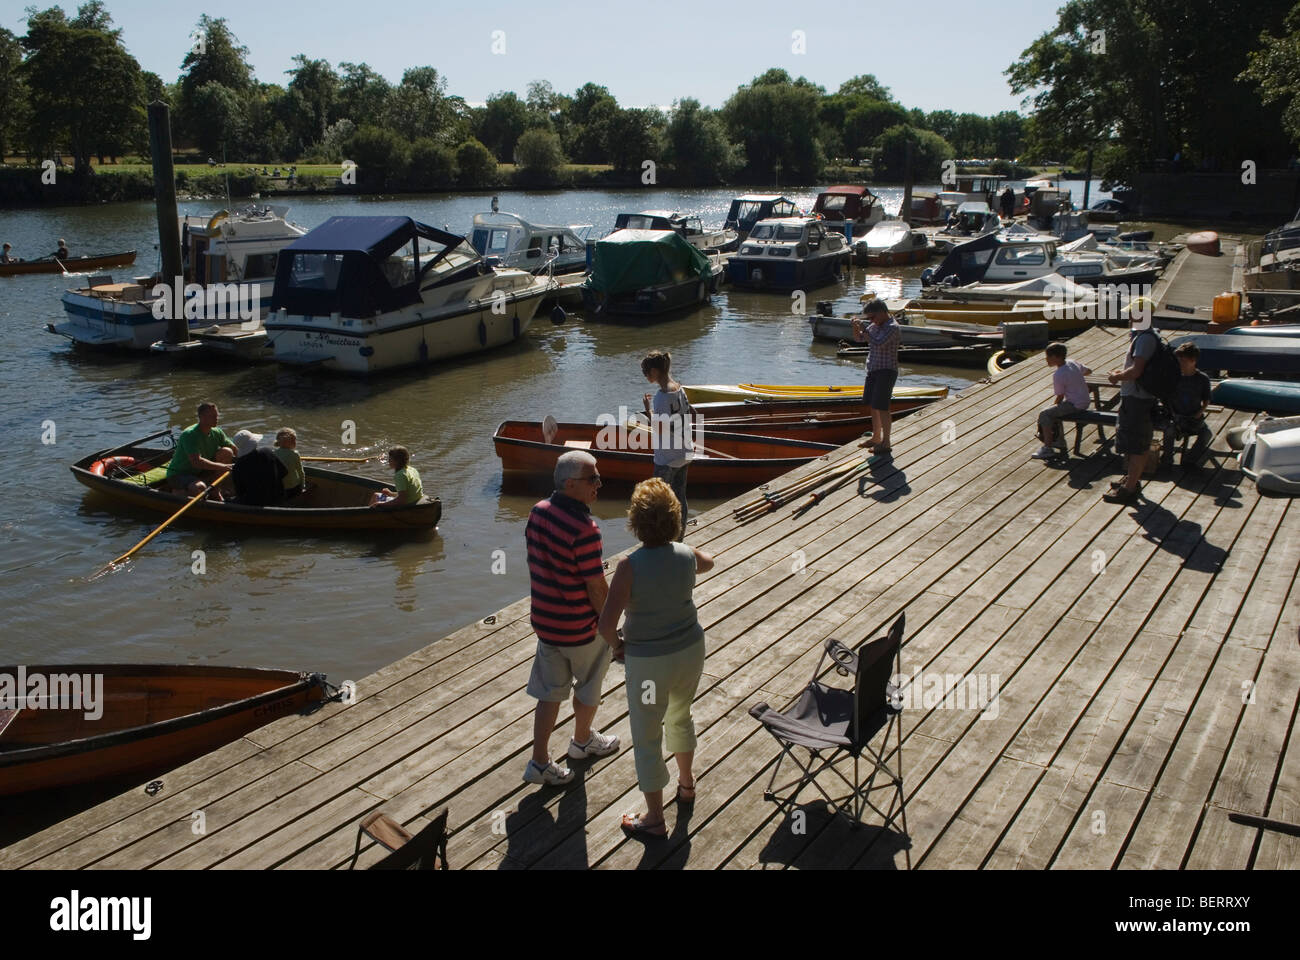 River Thames Private jetty point for pleasure craft and boats for hire Twichenham Surrey HOMER SYKES - Stock Image